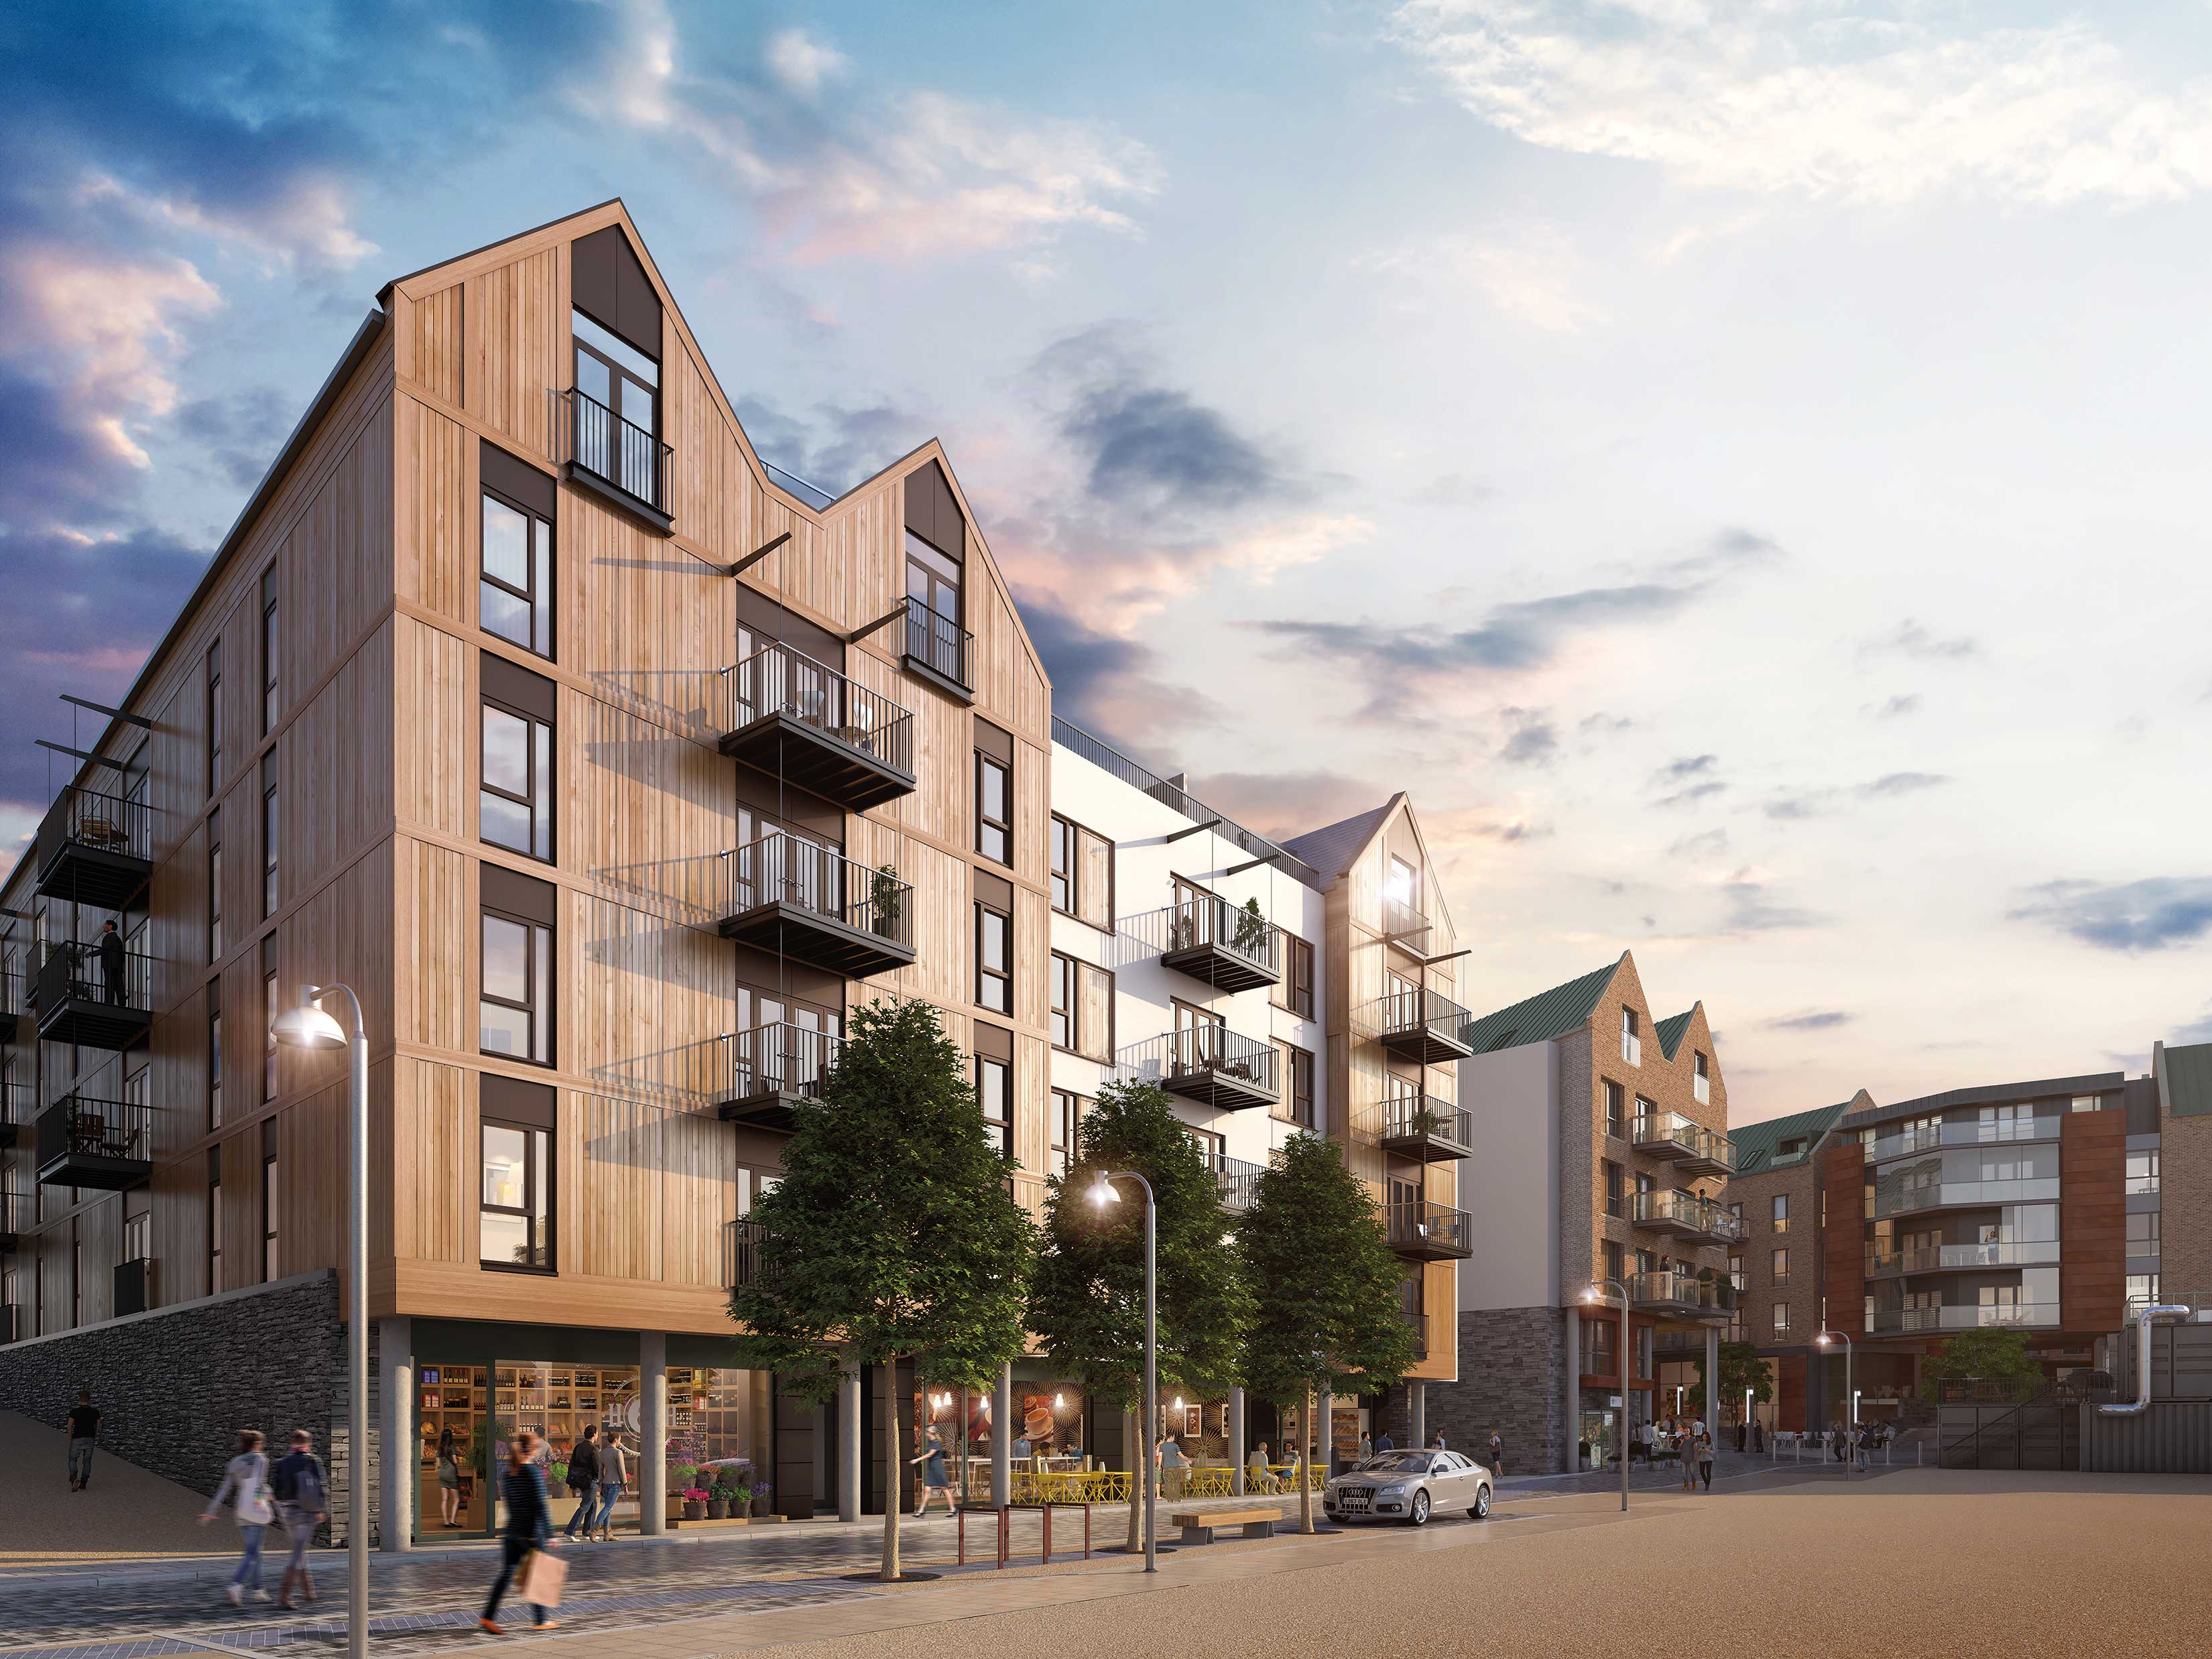 CGI of Wapping Wharf Living, for illustrative purposes only